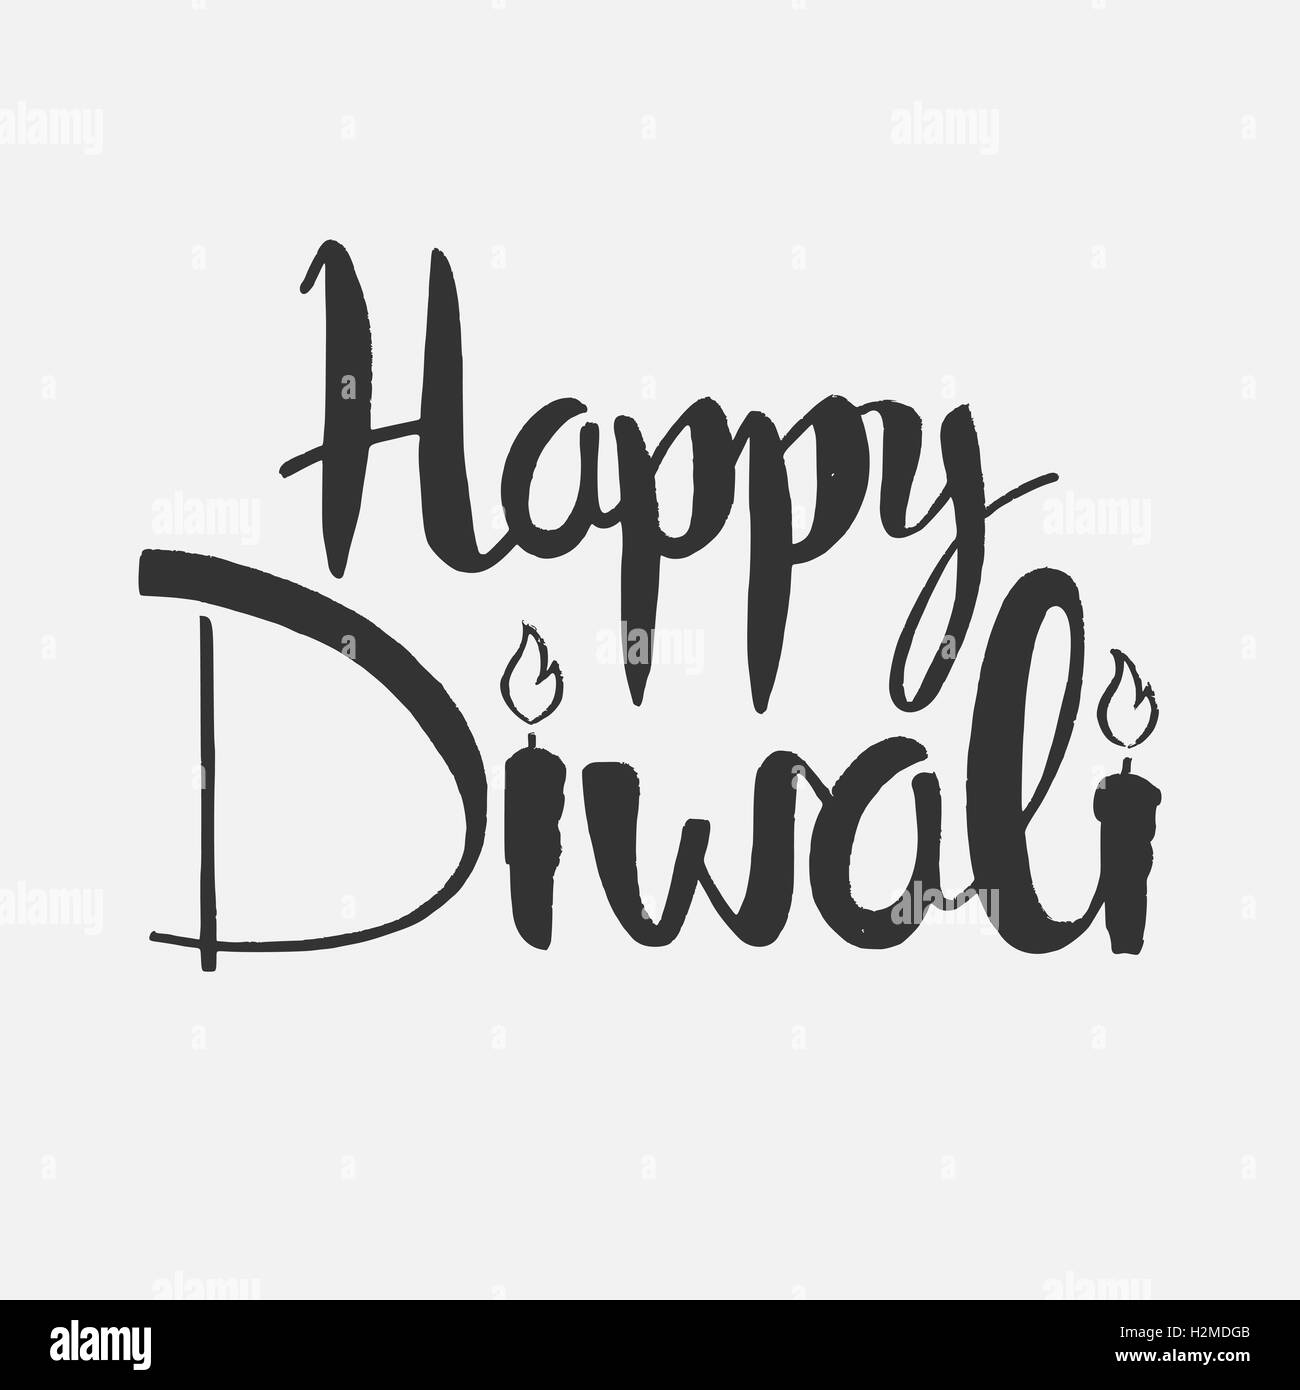 Diwali Black And White Pictures Happy Diwali Black And White Stock Photos And Images Alamy